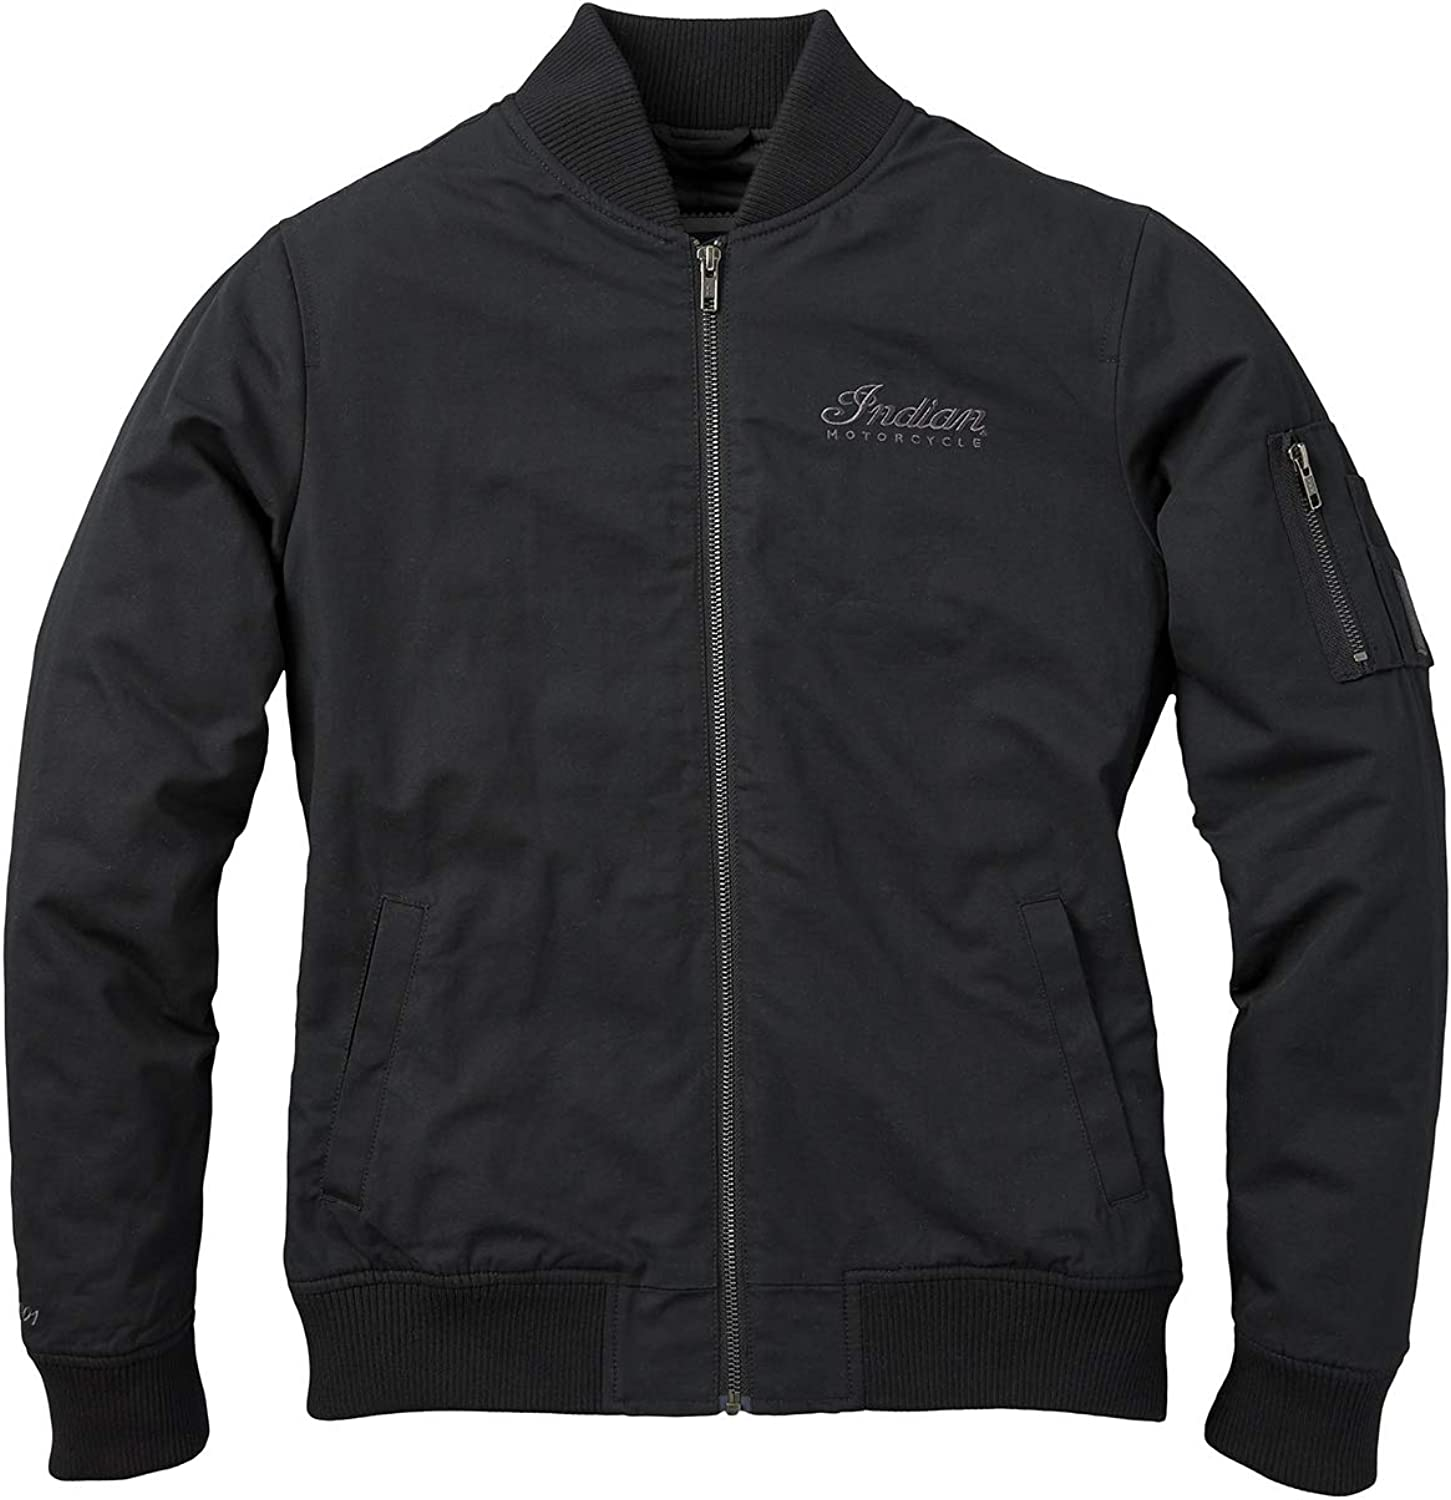 Indian Motorcycle Women's Casual Bomber Jacket, Black